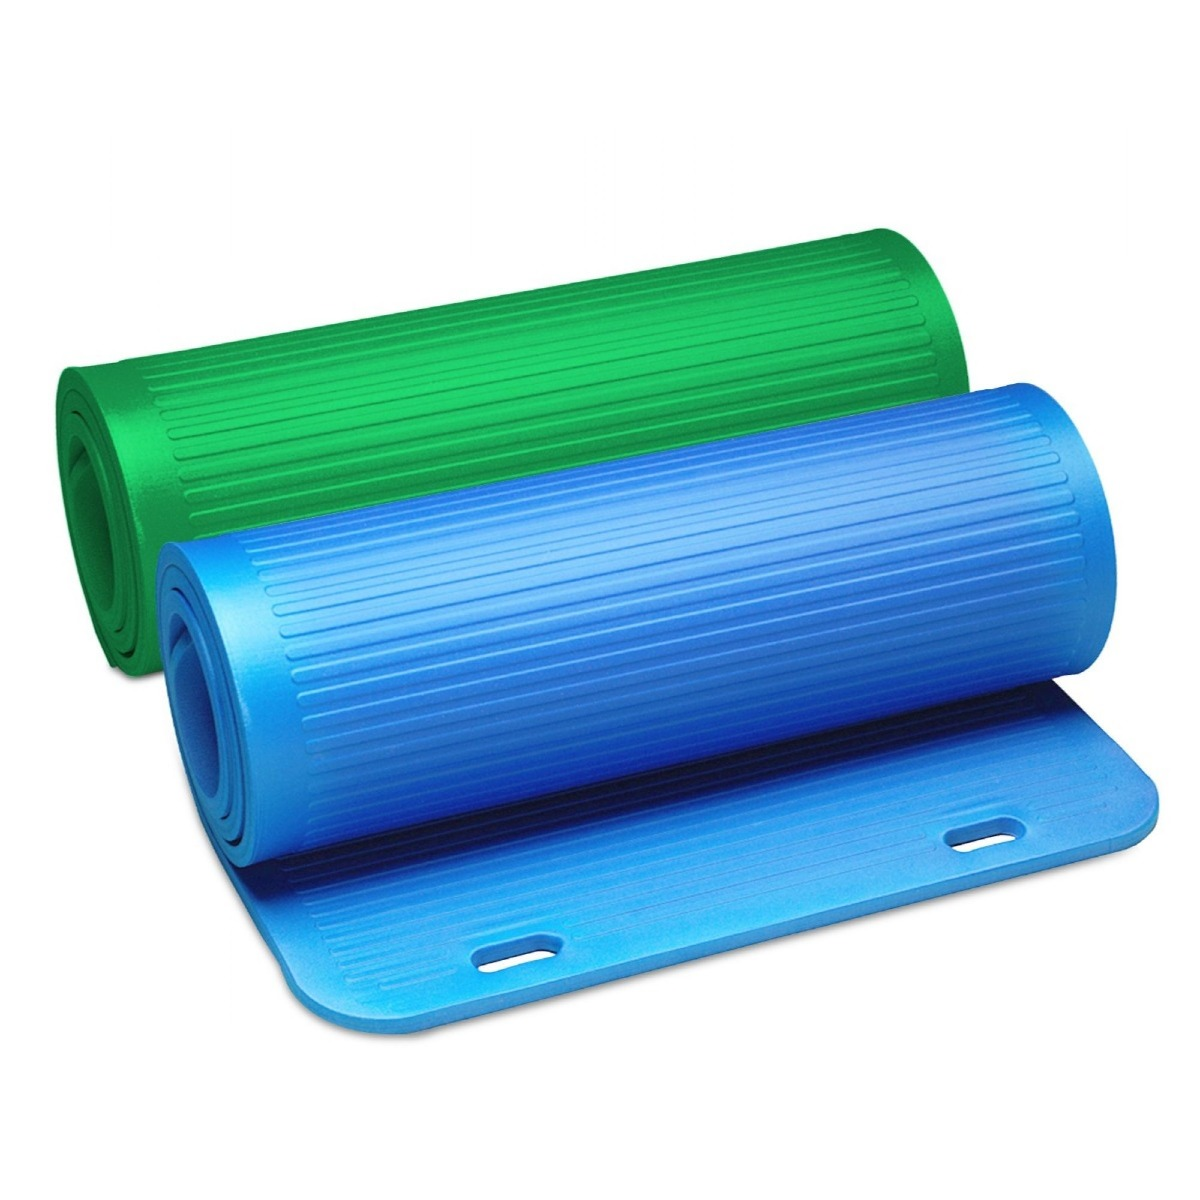 Green and blue TheraBand yoga mats rolled up